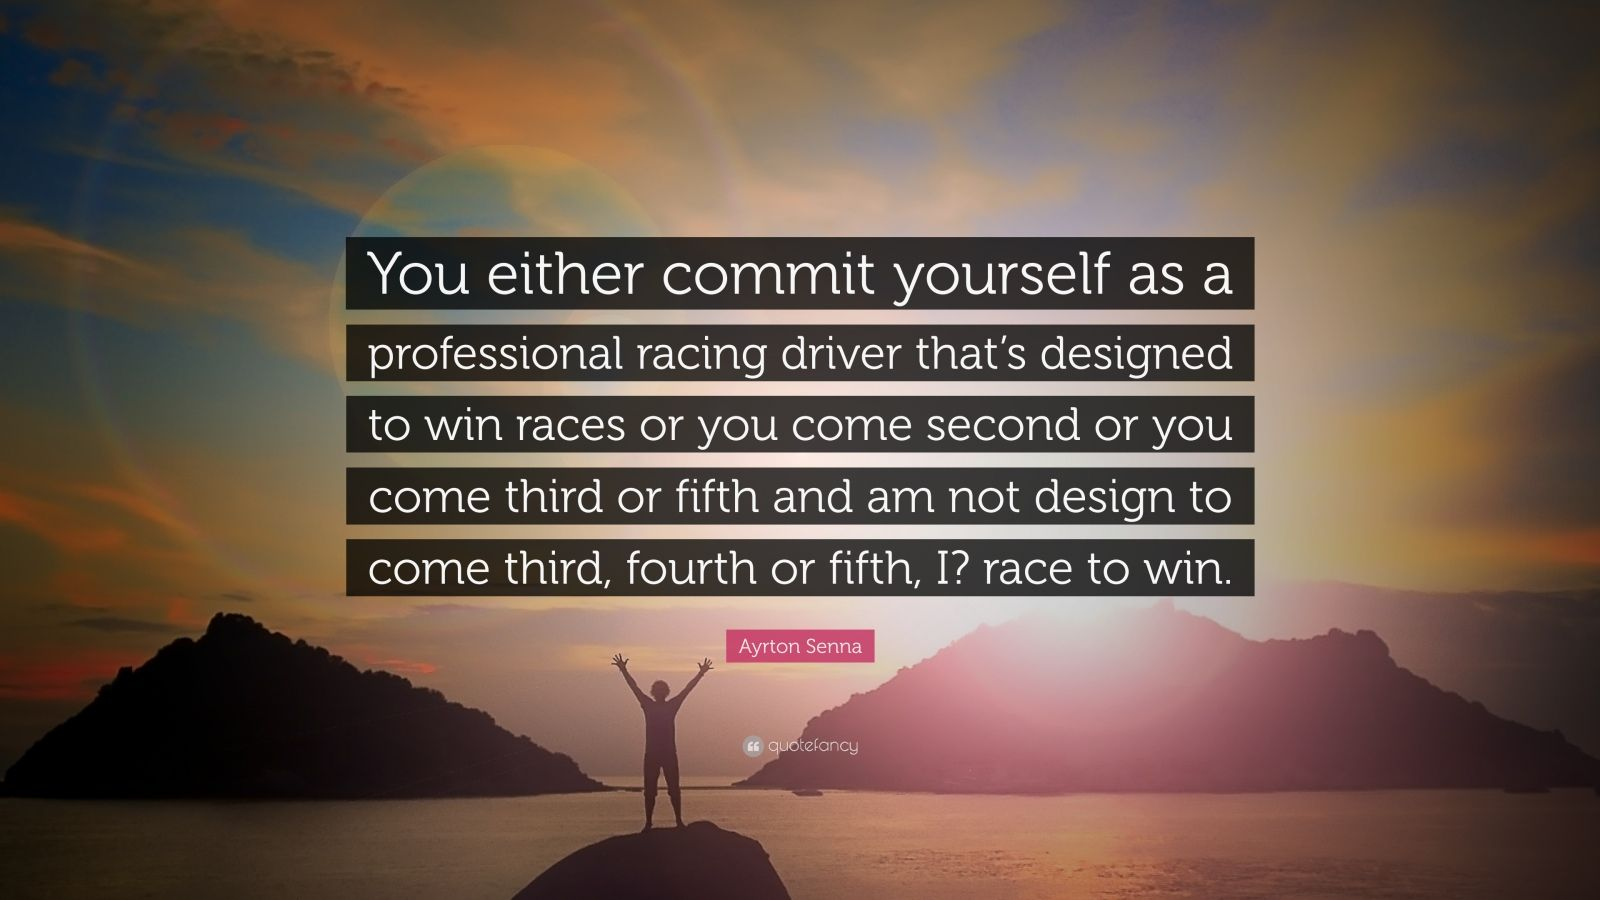 """Ayrton Senna Quote: """"You either commit yourself as a professional racing driver that's designed to win races or you come second or you come third or fifth and am not design to come third, fourth or fifth, I? race to win."""""""